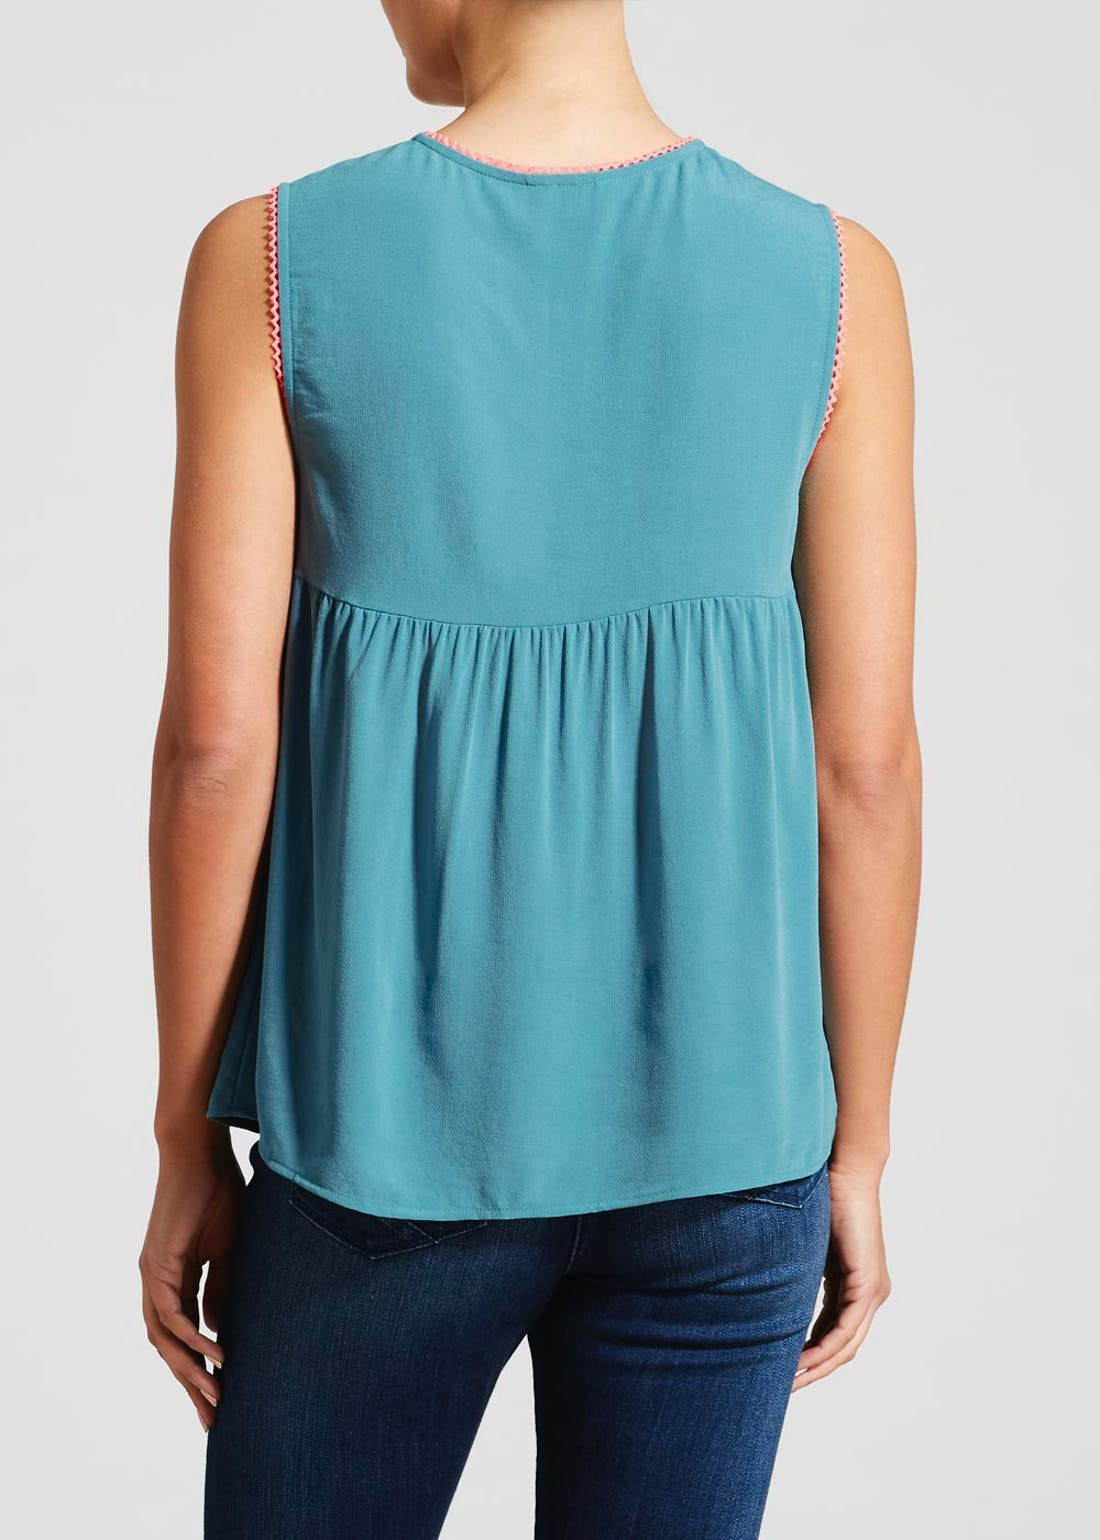 Falmer Teal Sleeveless Floral Embroidered Blouse